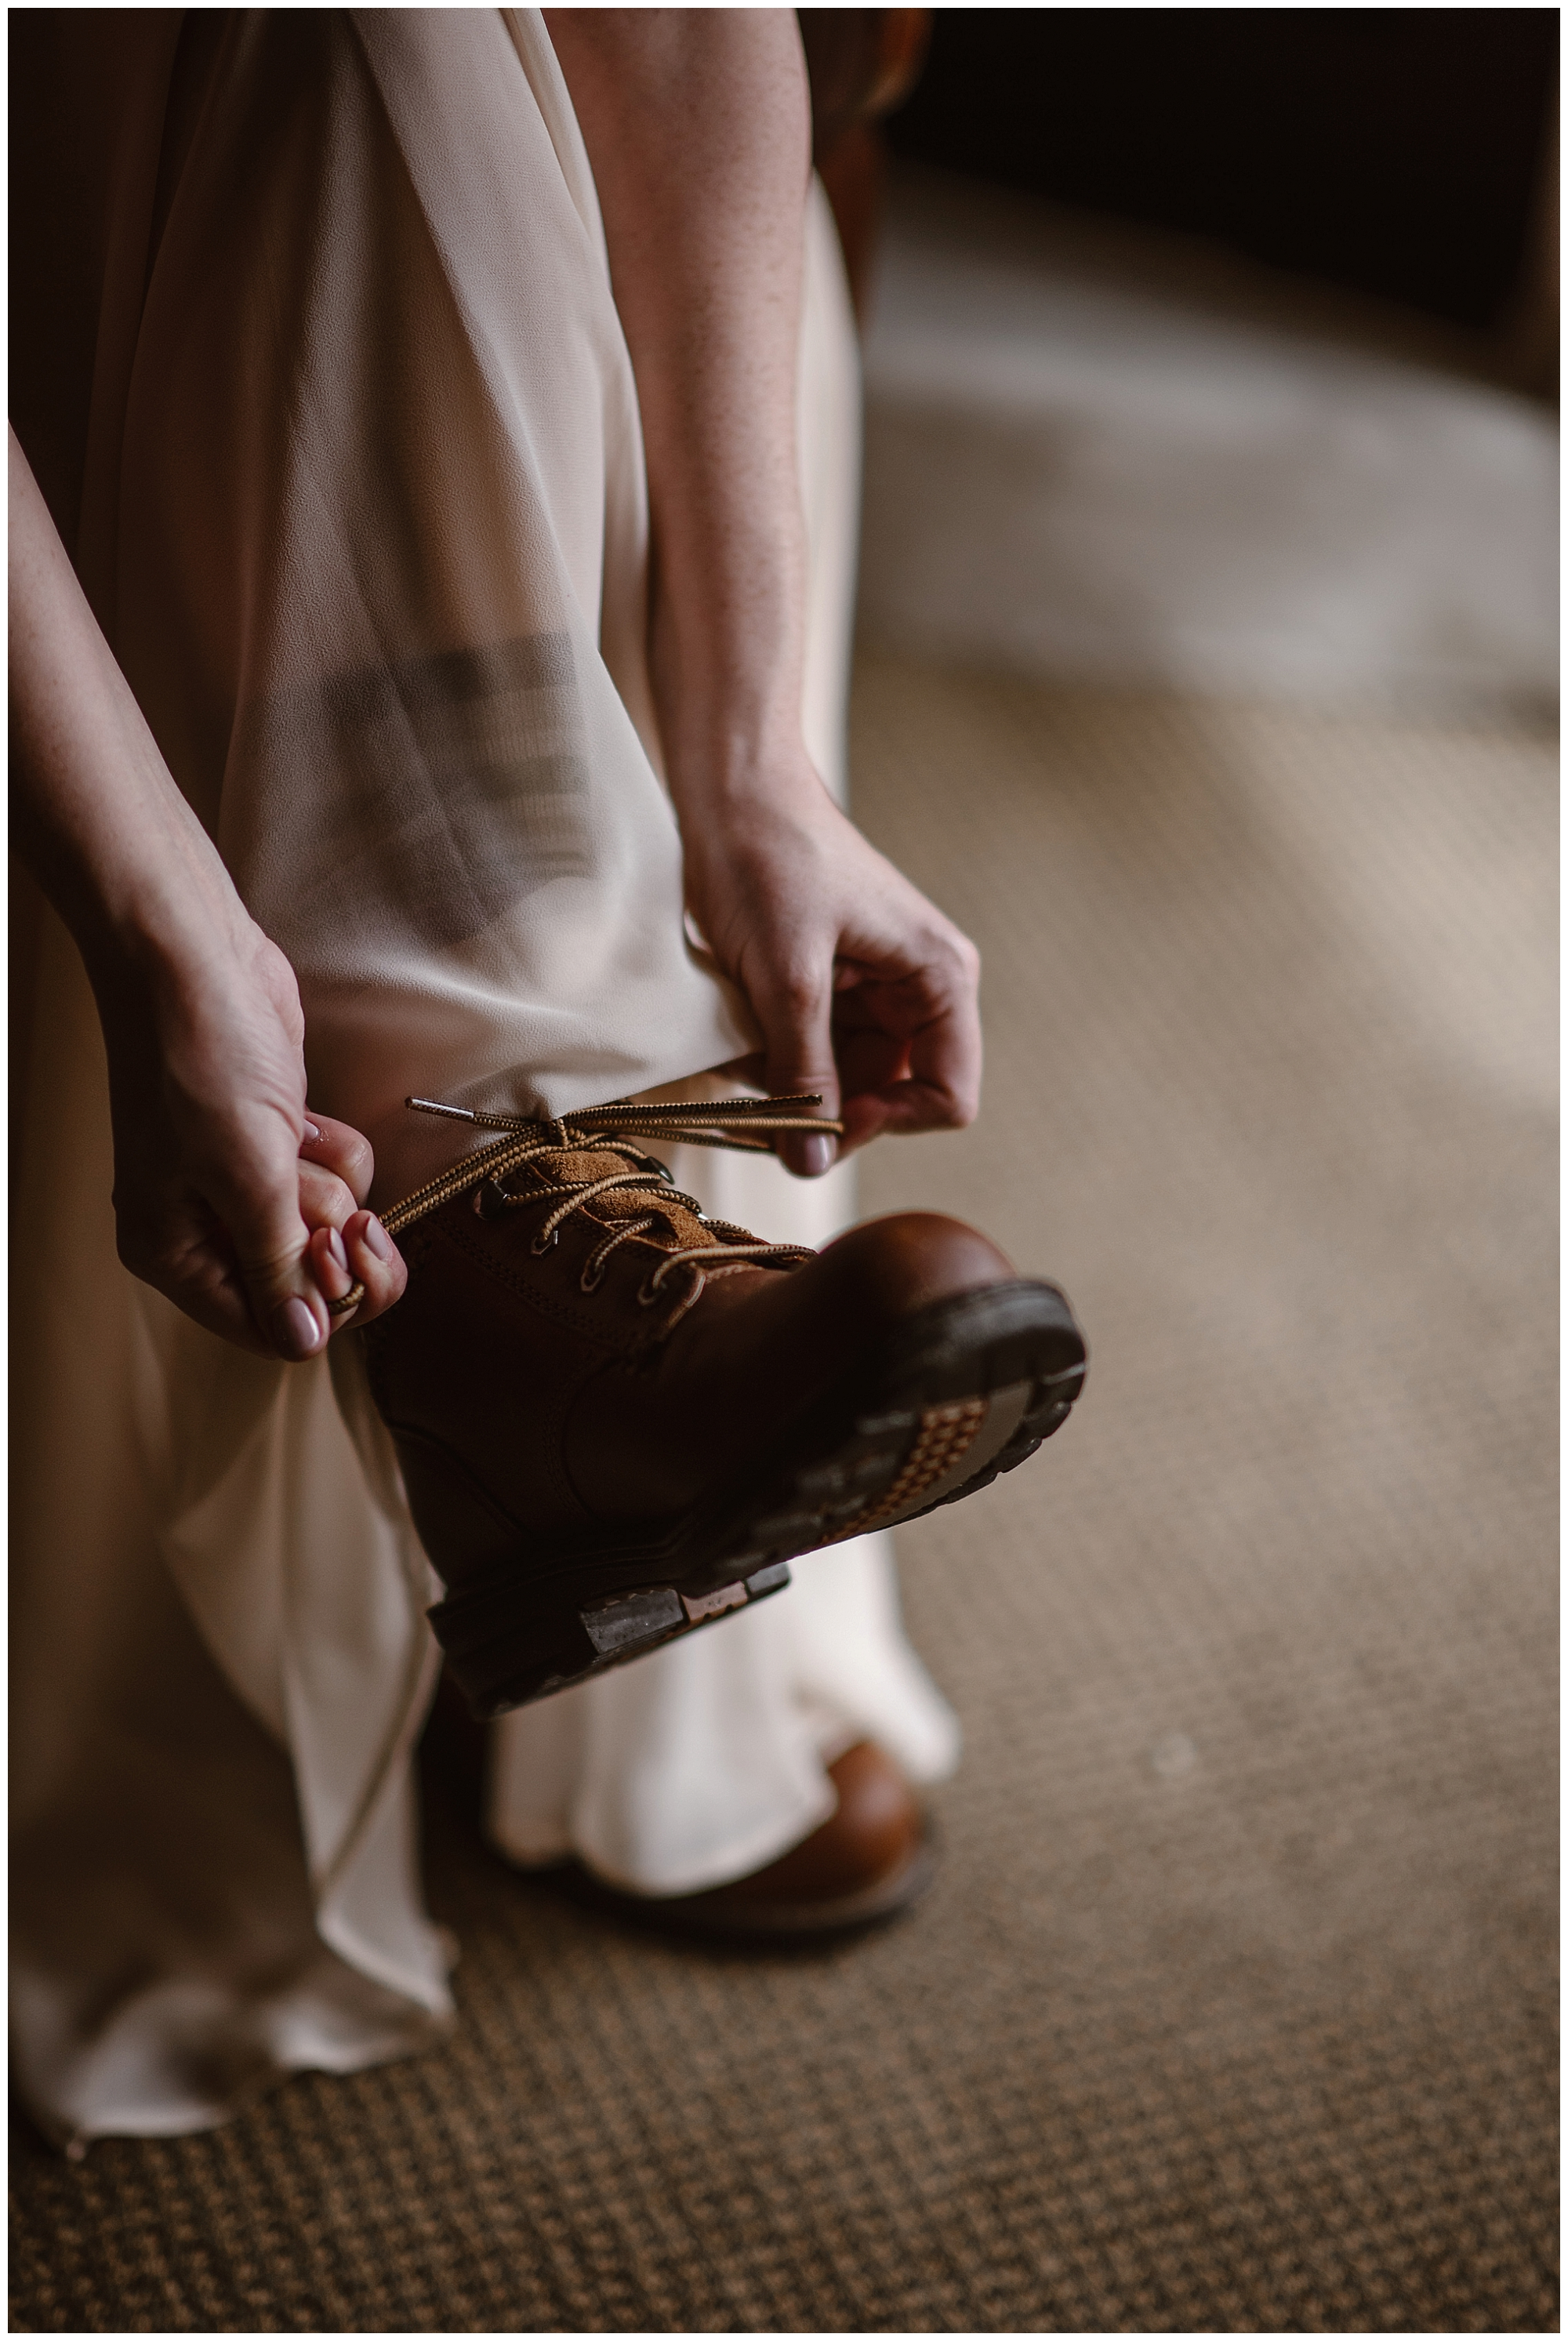 Hiking boots are essential for a winter elopement ceremony. Marlayna layers up for her outdoor elopement at Sapphire Point in Dillon, Colorado. Photo by Adventure Instead, Maddie Mae Elopement Photographers.